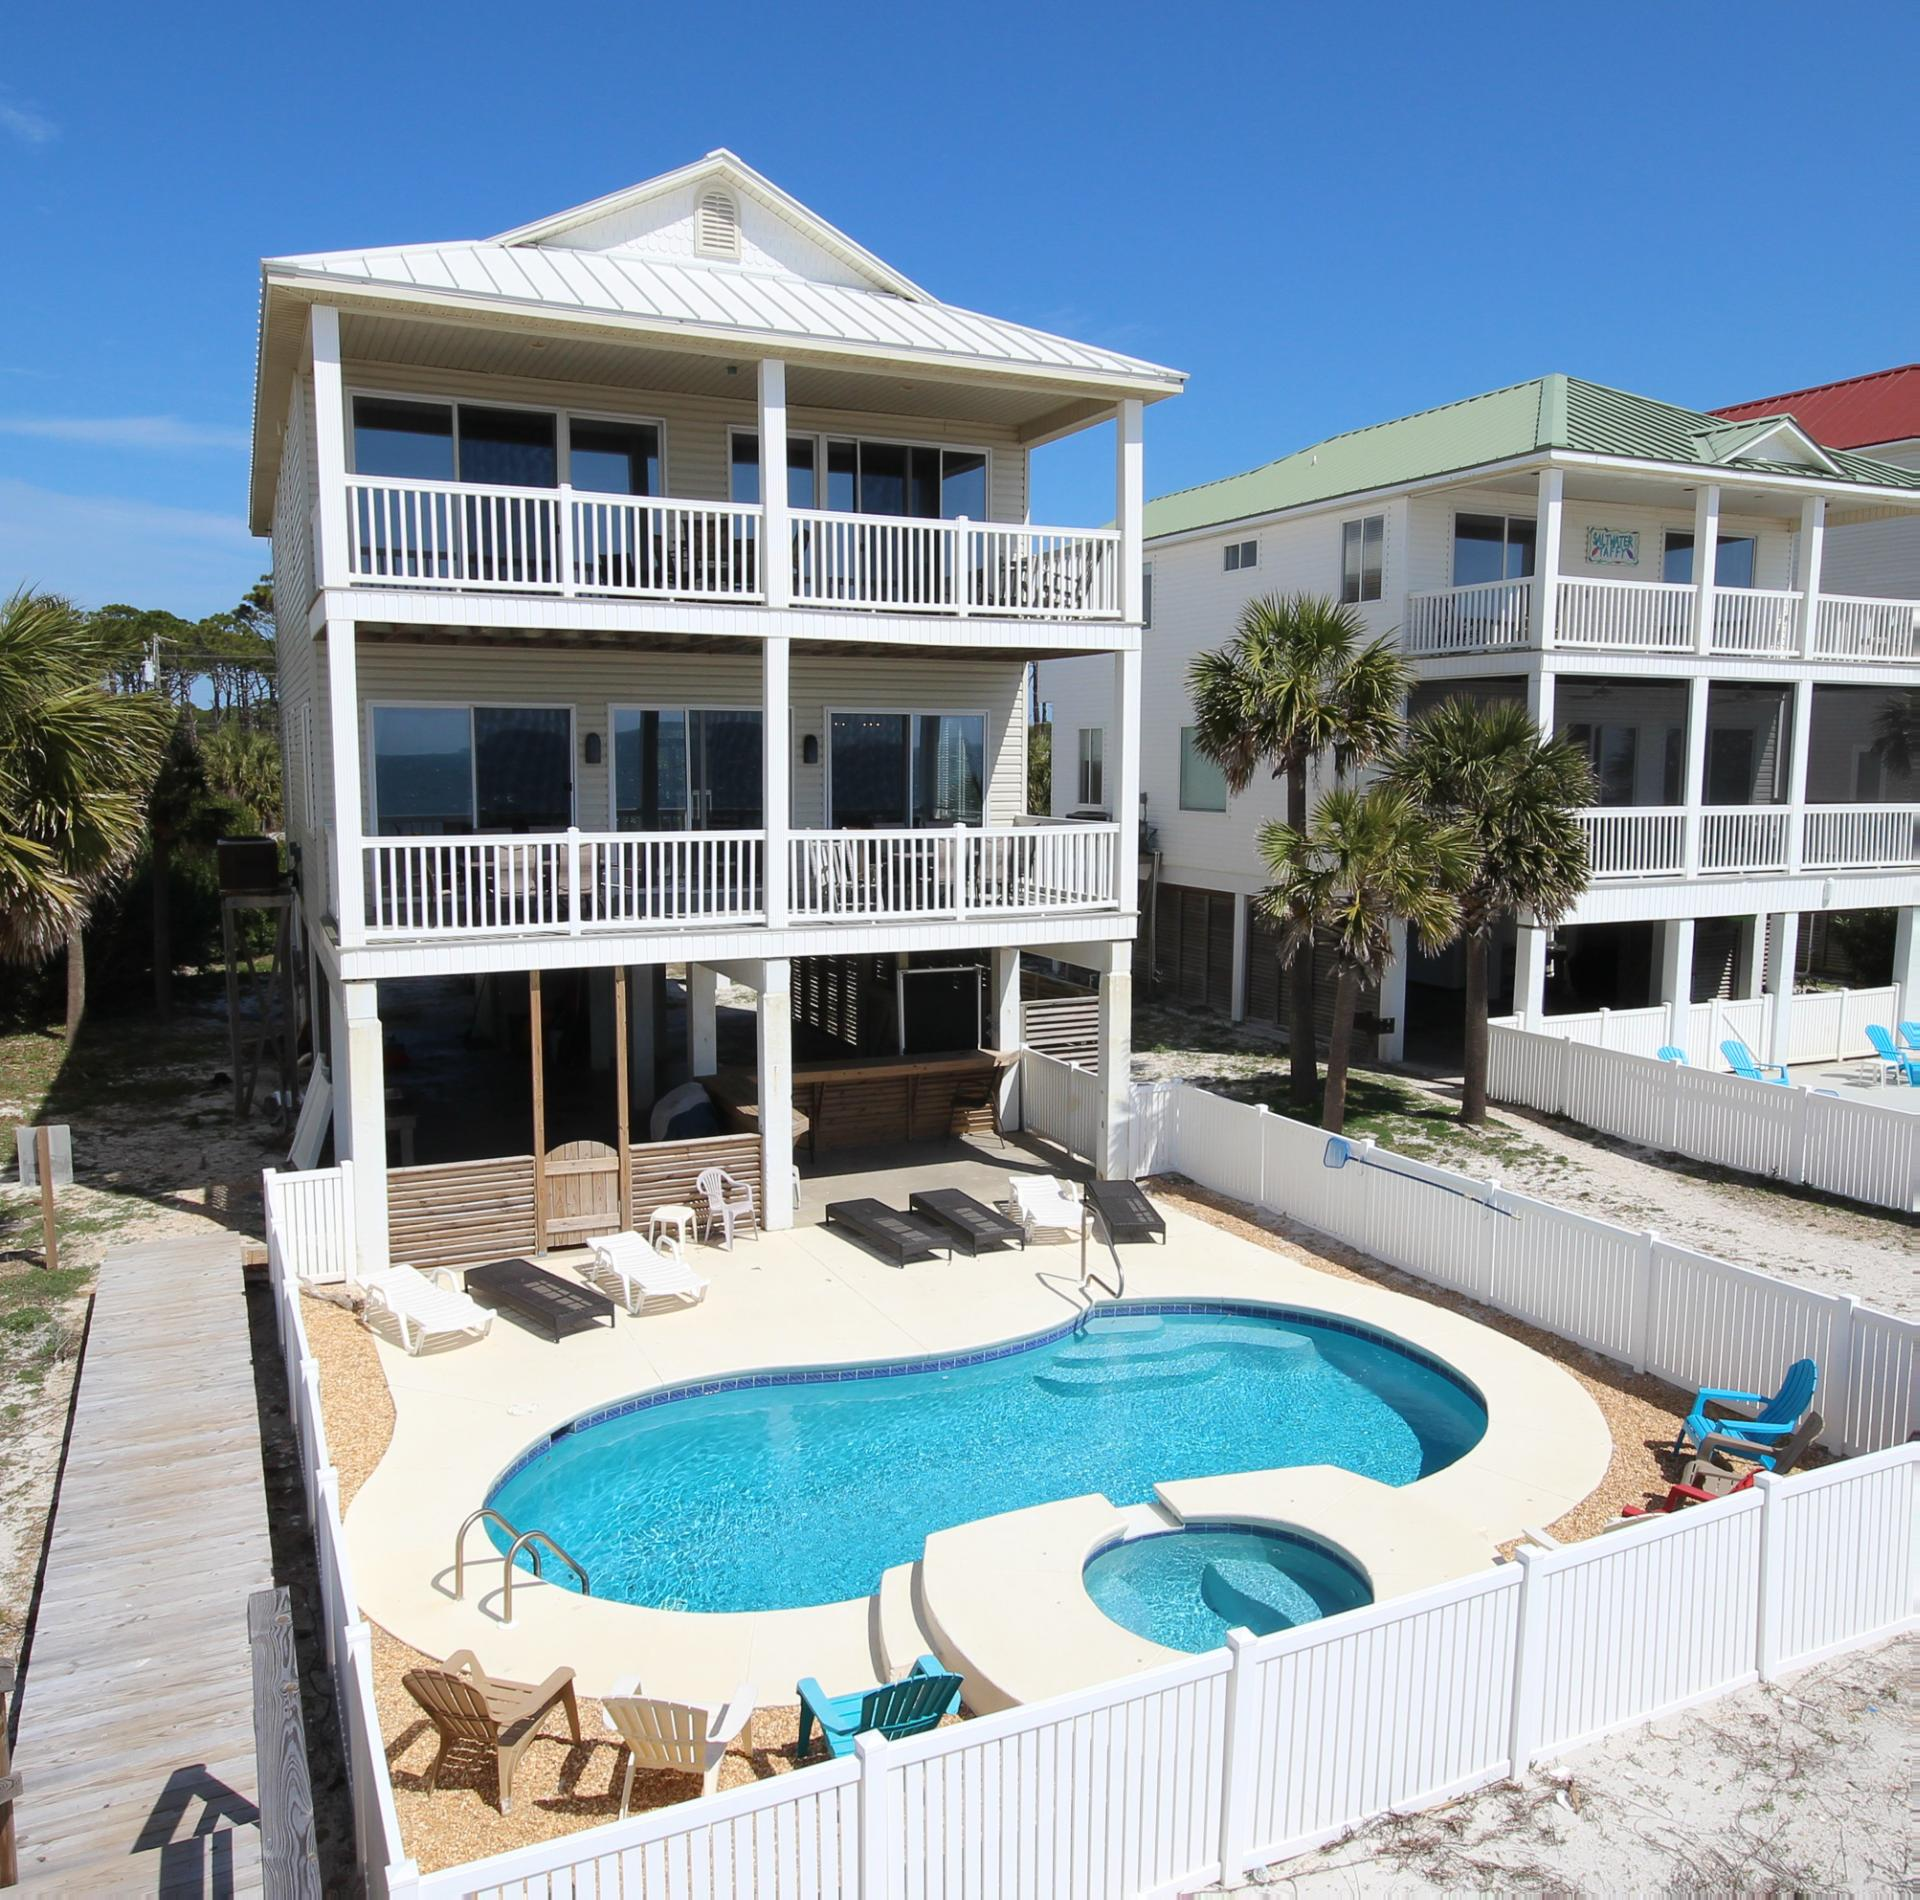 Vacation Rentals: SANTORINI: Cape San Blas 5 Bedroom 5 Full Bathroom House